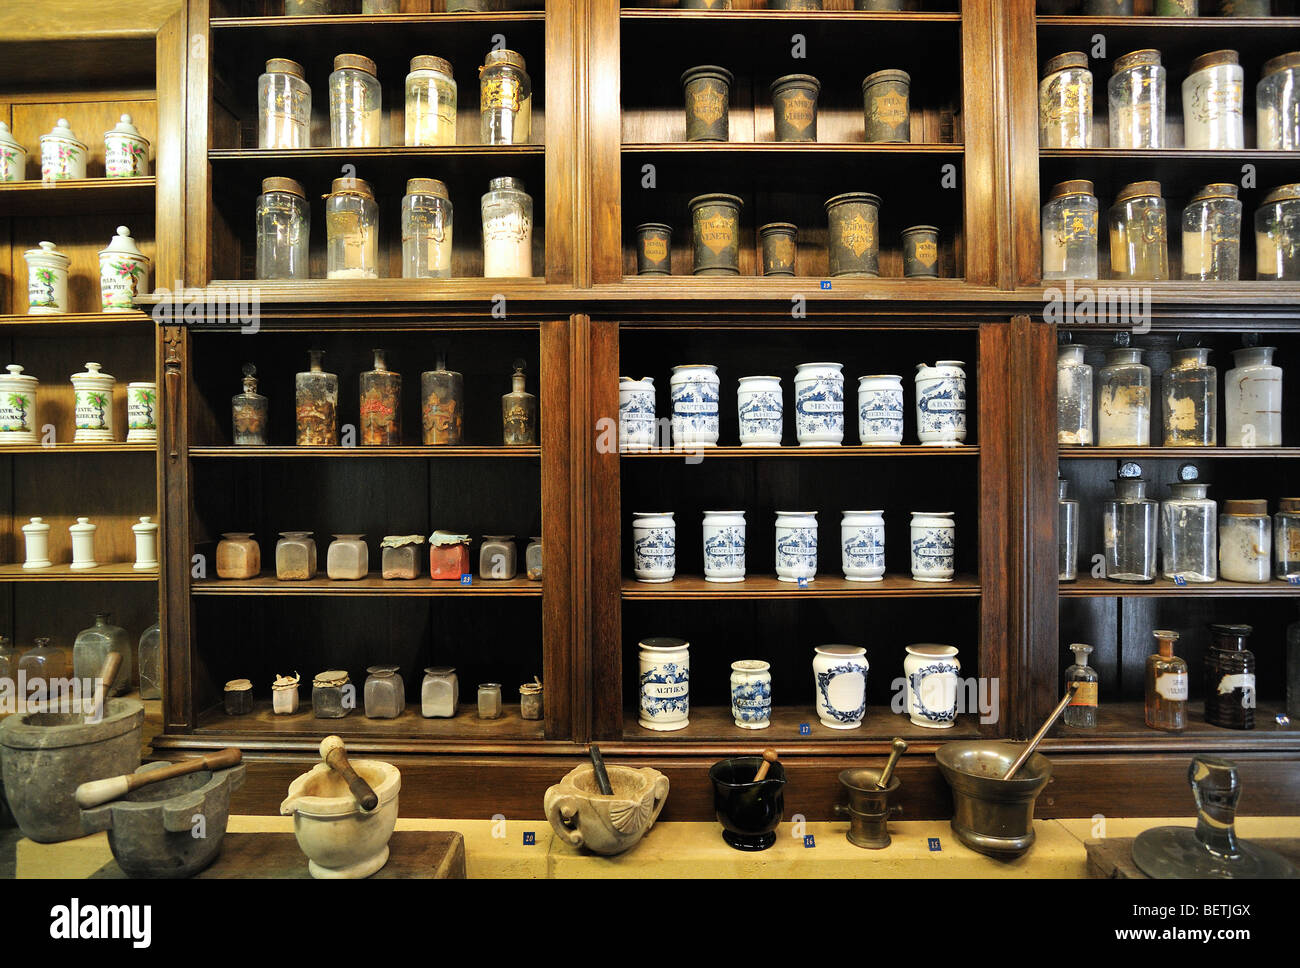 Apothecary cabinet of old pharmacy showing pots and jars with medicines in the Orval Abbey / Abbaye Notre-Dame d'Orval, - Stock Image